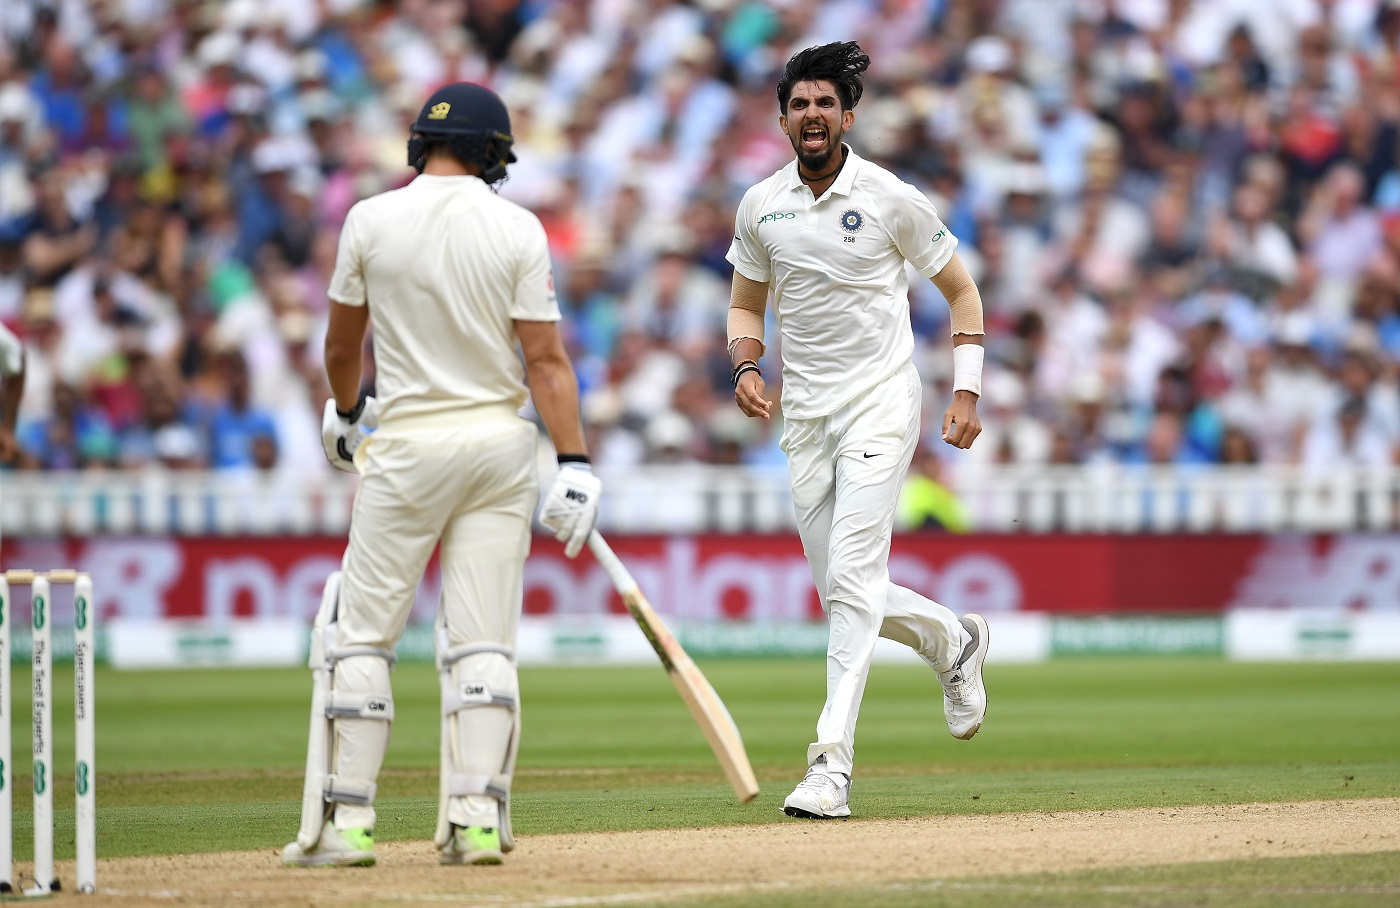 Ishant Sharma picked up 5 wickets for 51 runs